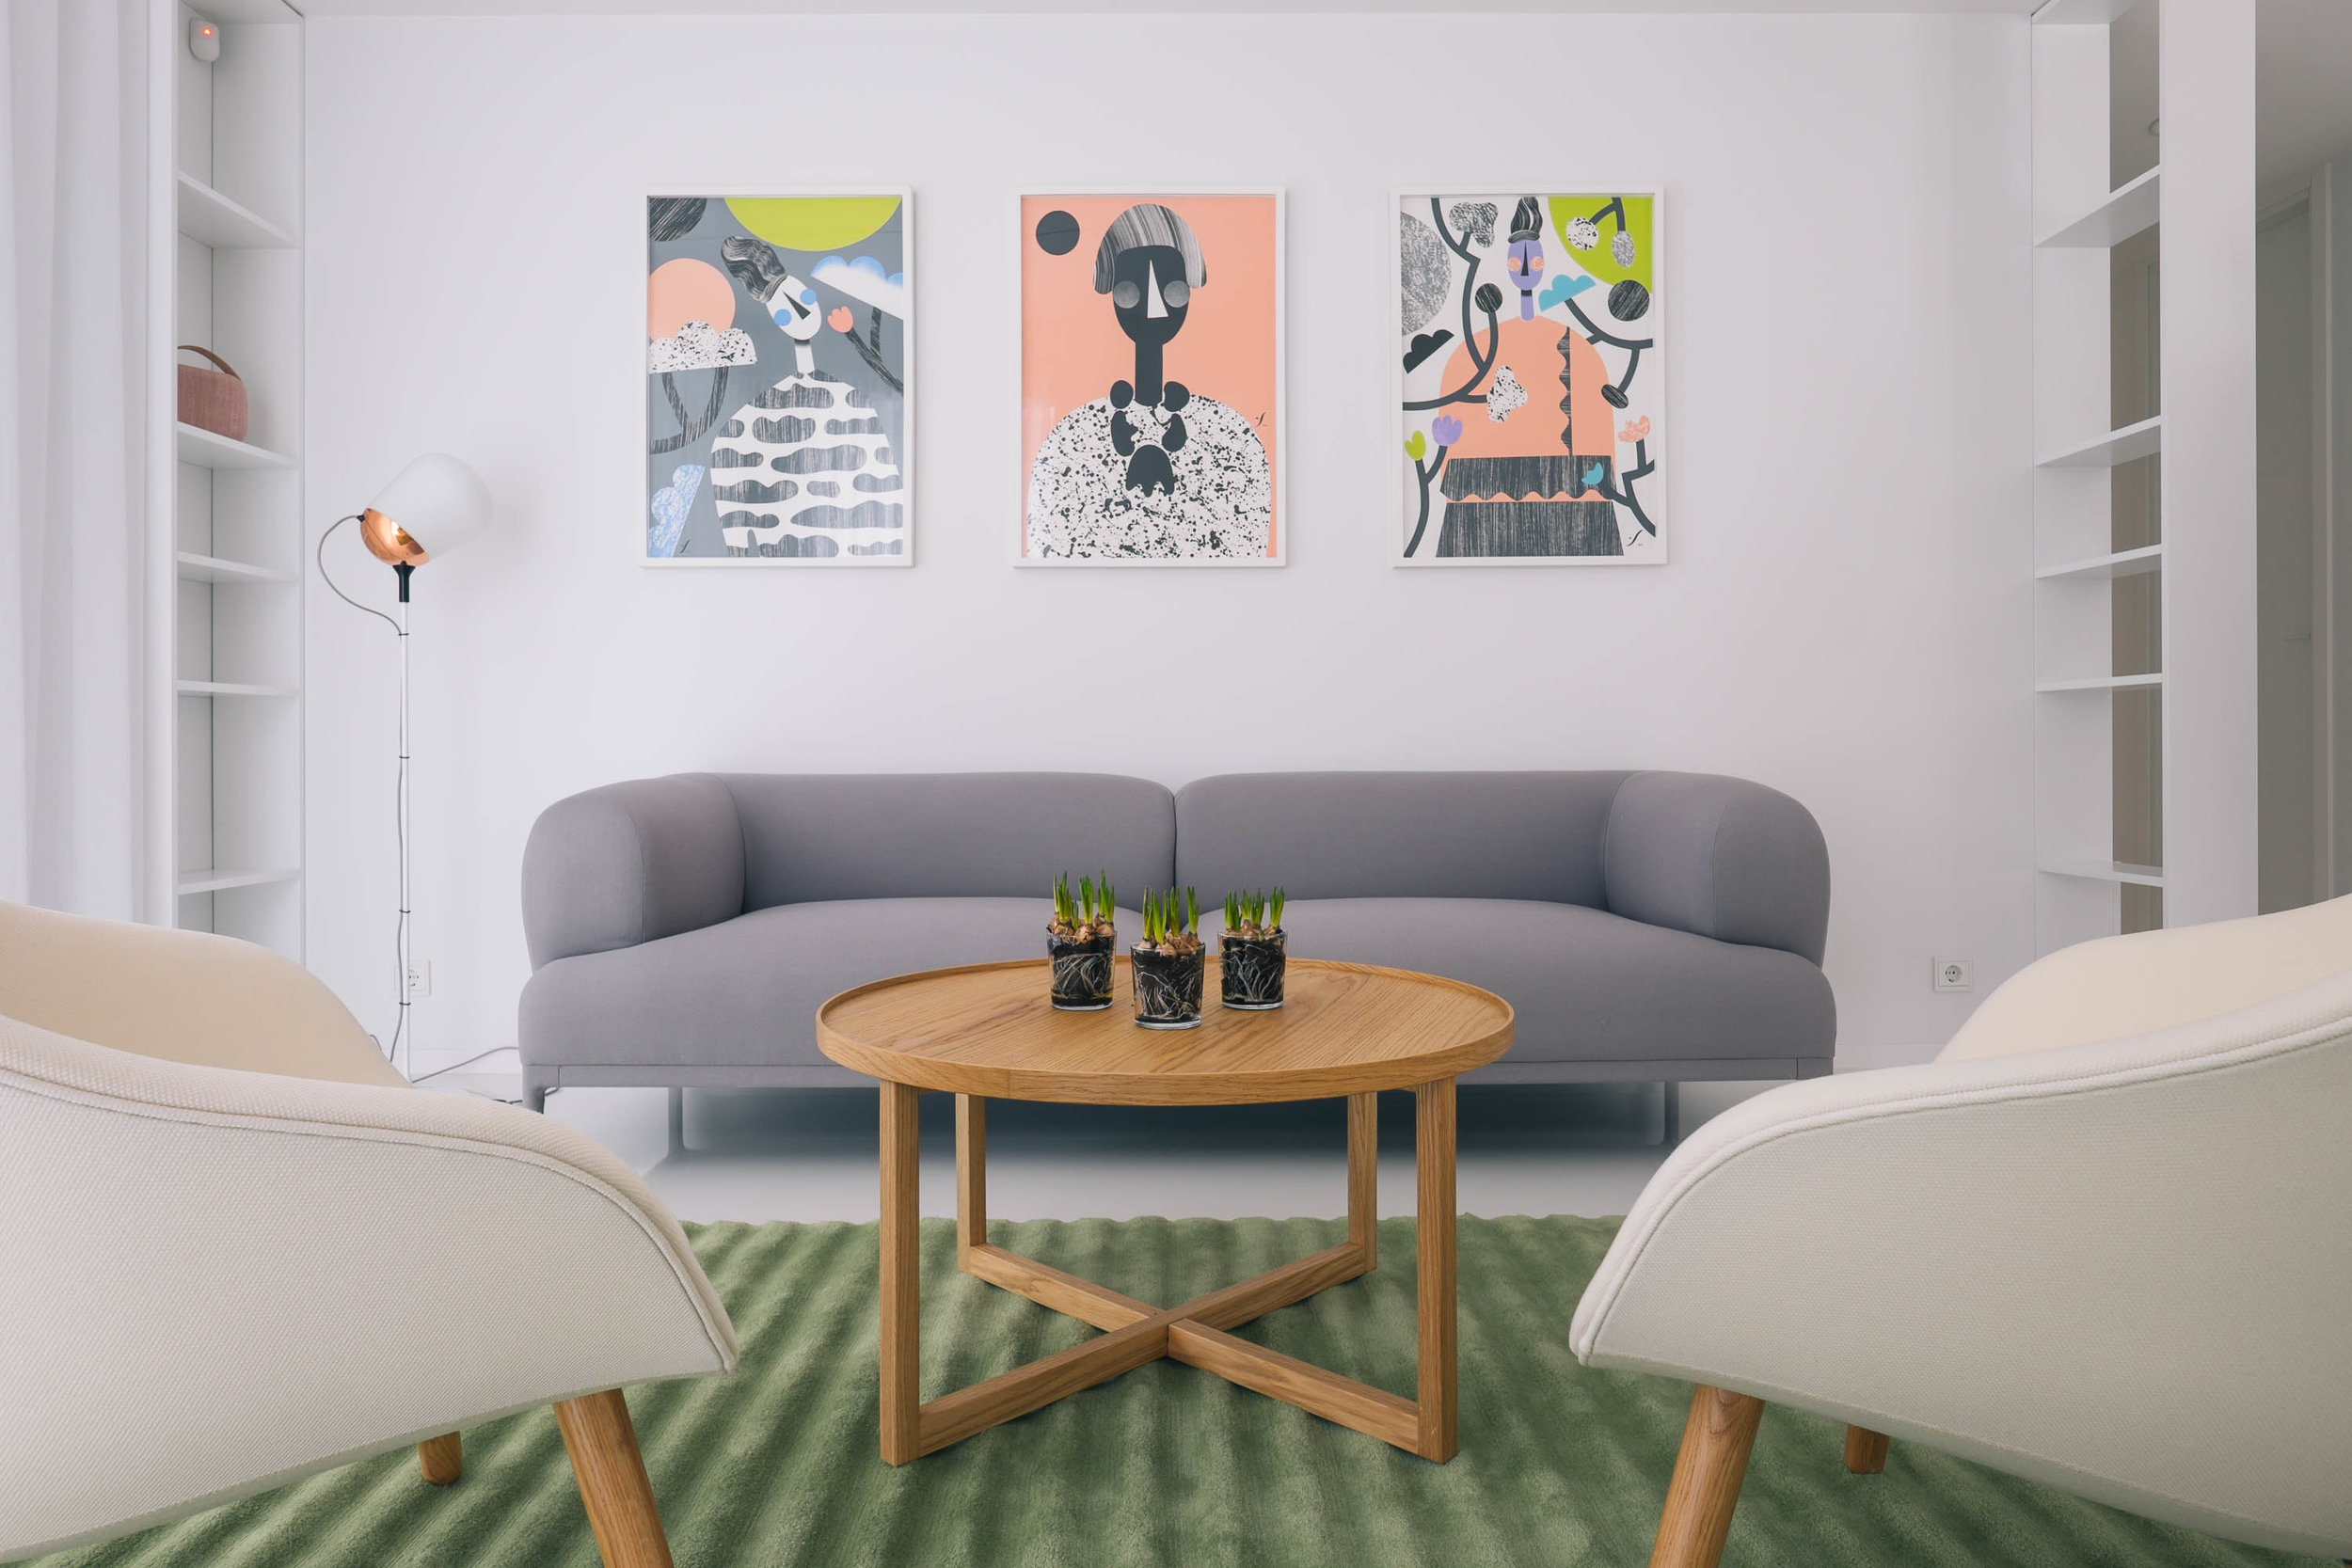 Interior design by Ace Of Space